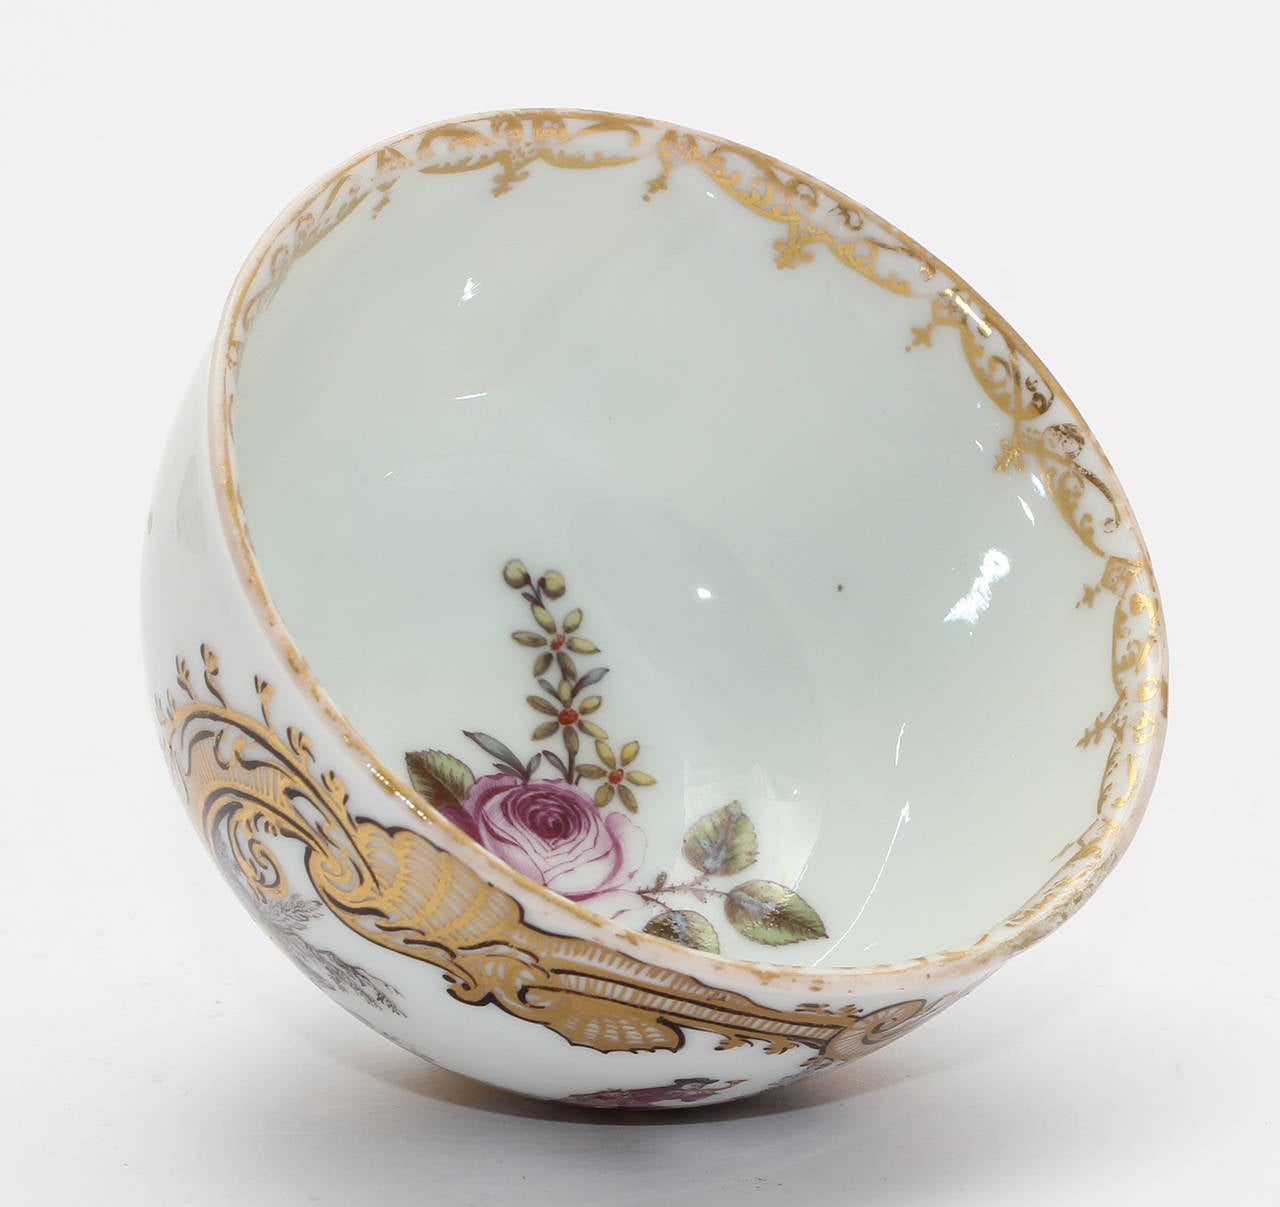 Meissen Tea Bowl and Saucer, Equestrian Scene, circa 1745 For Sale 1